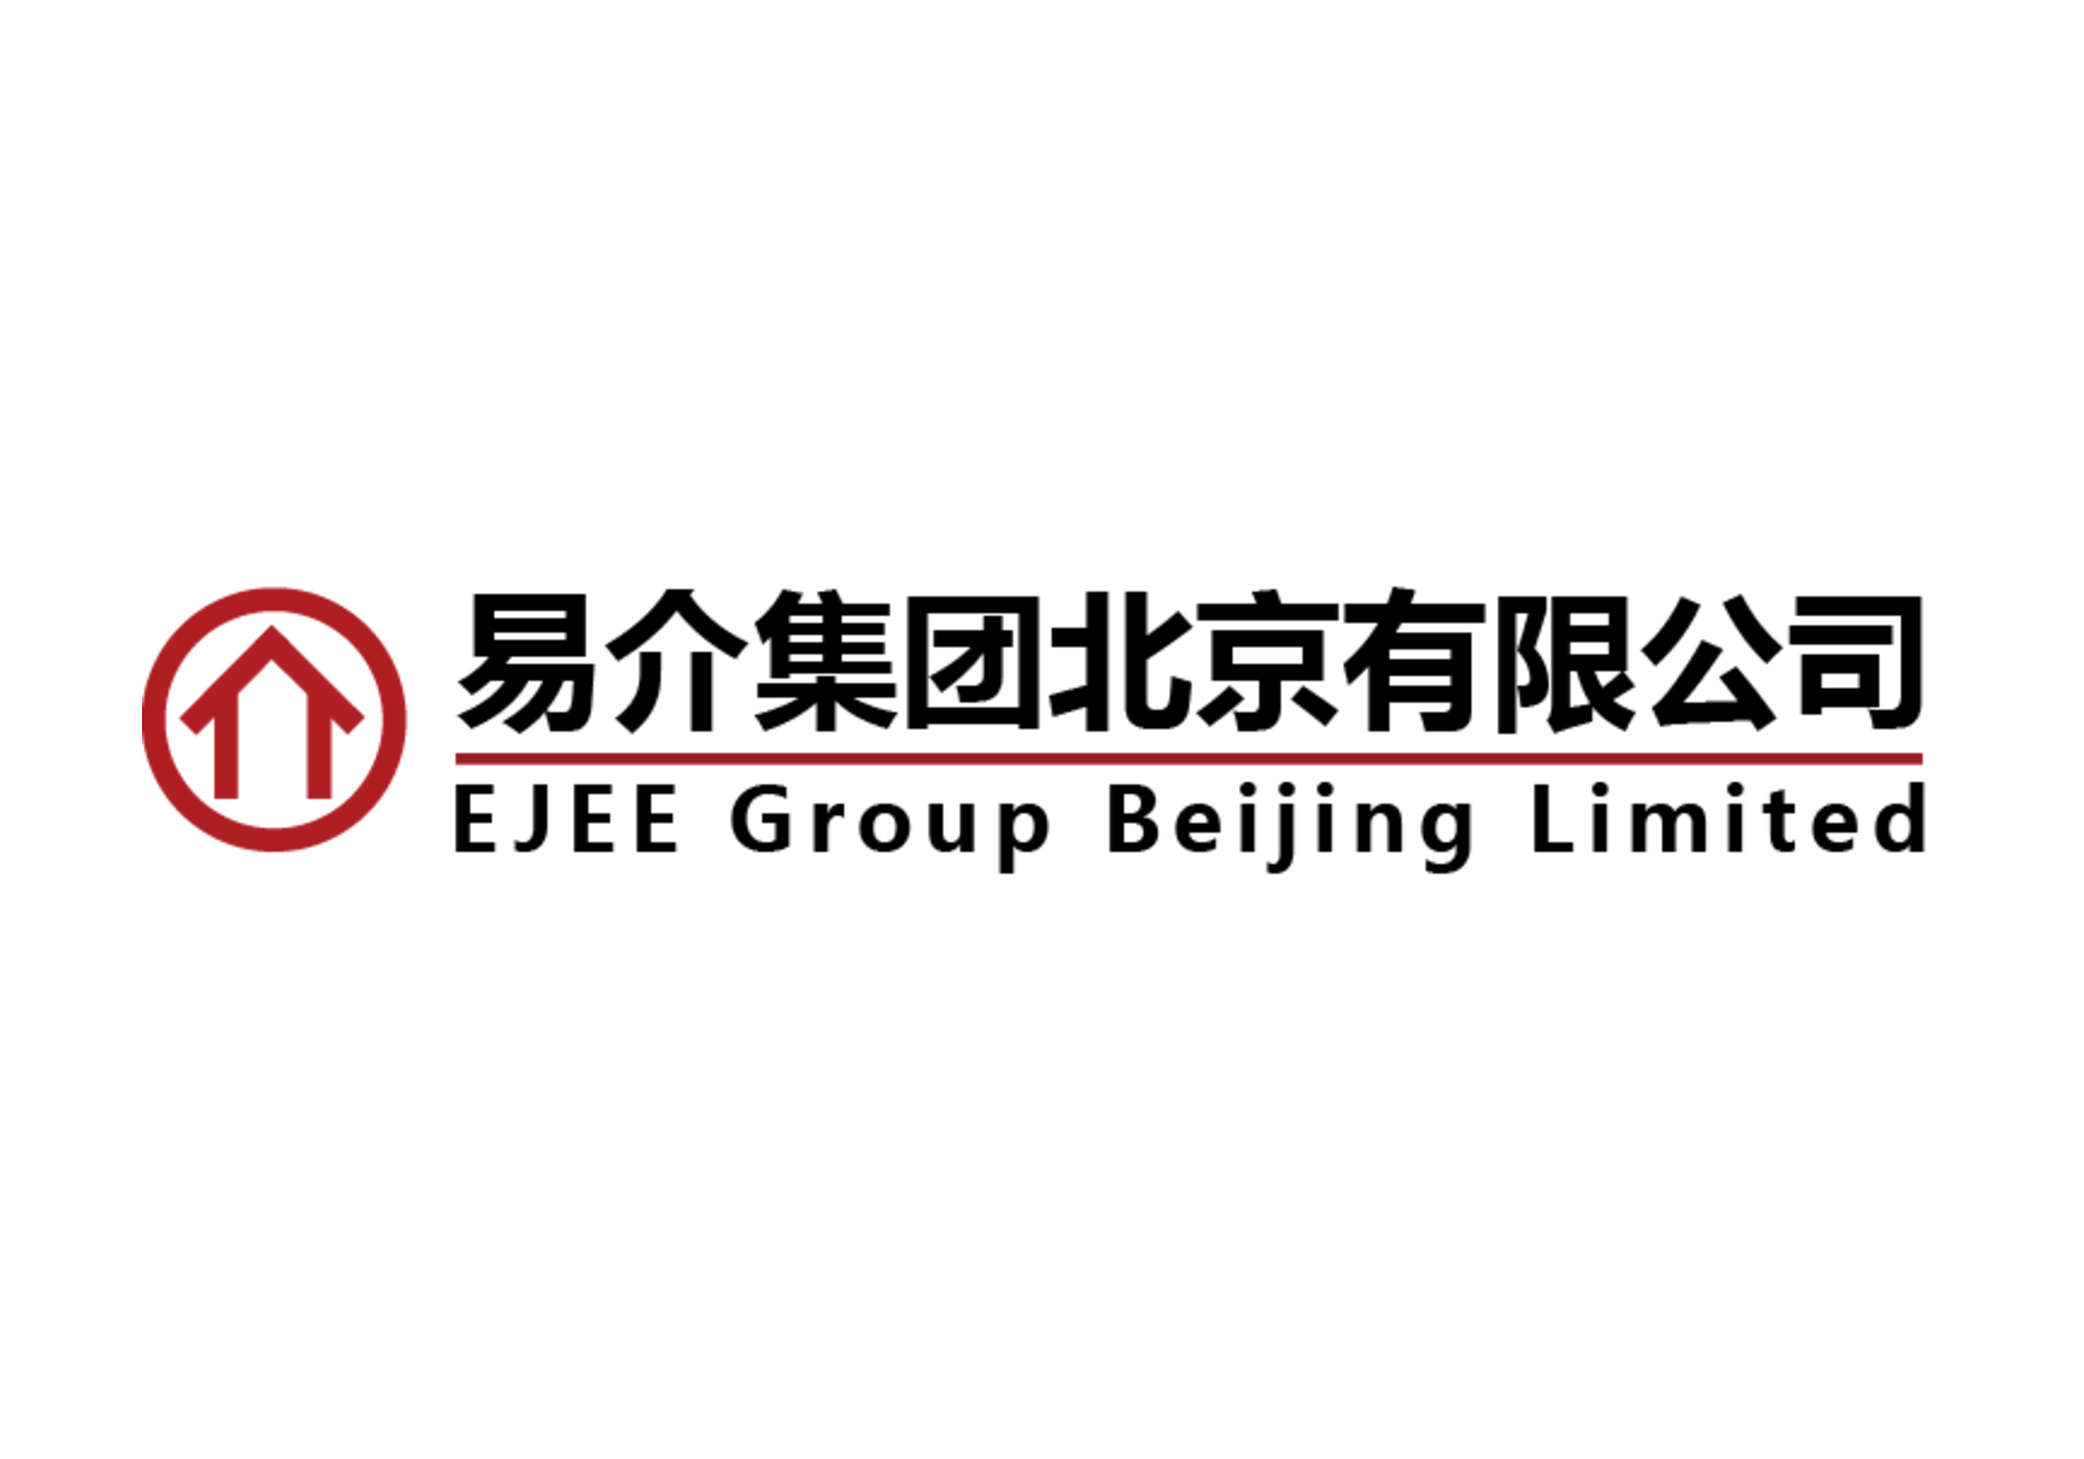 EJEE Group Beijing Limited